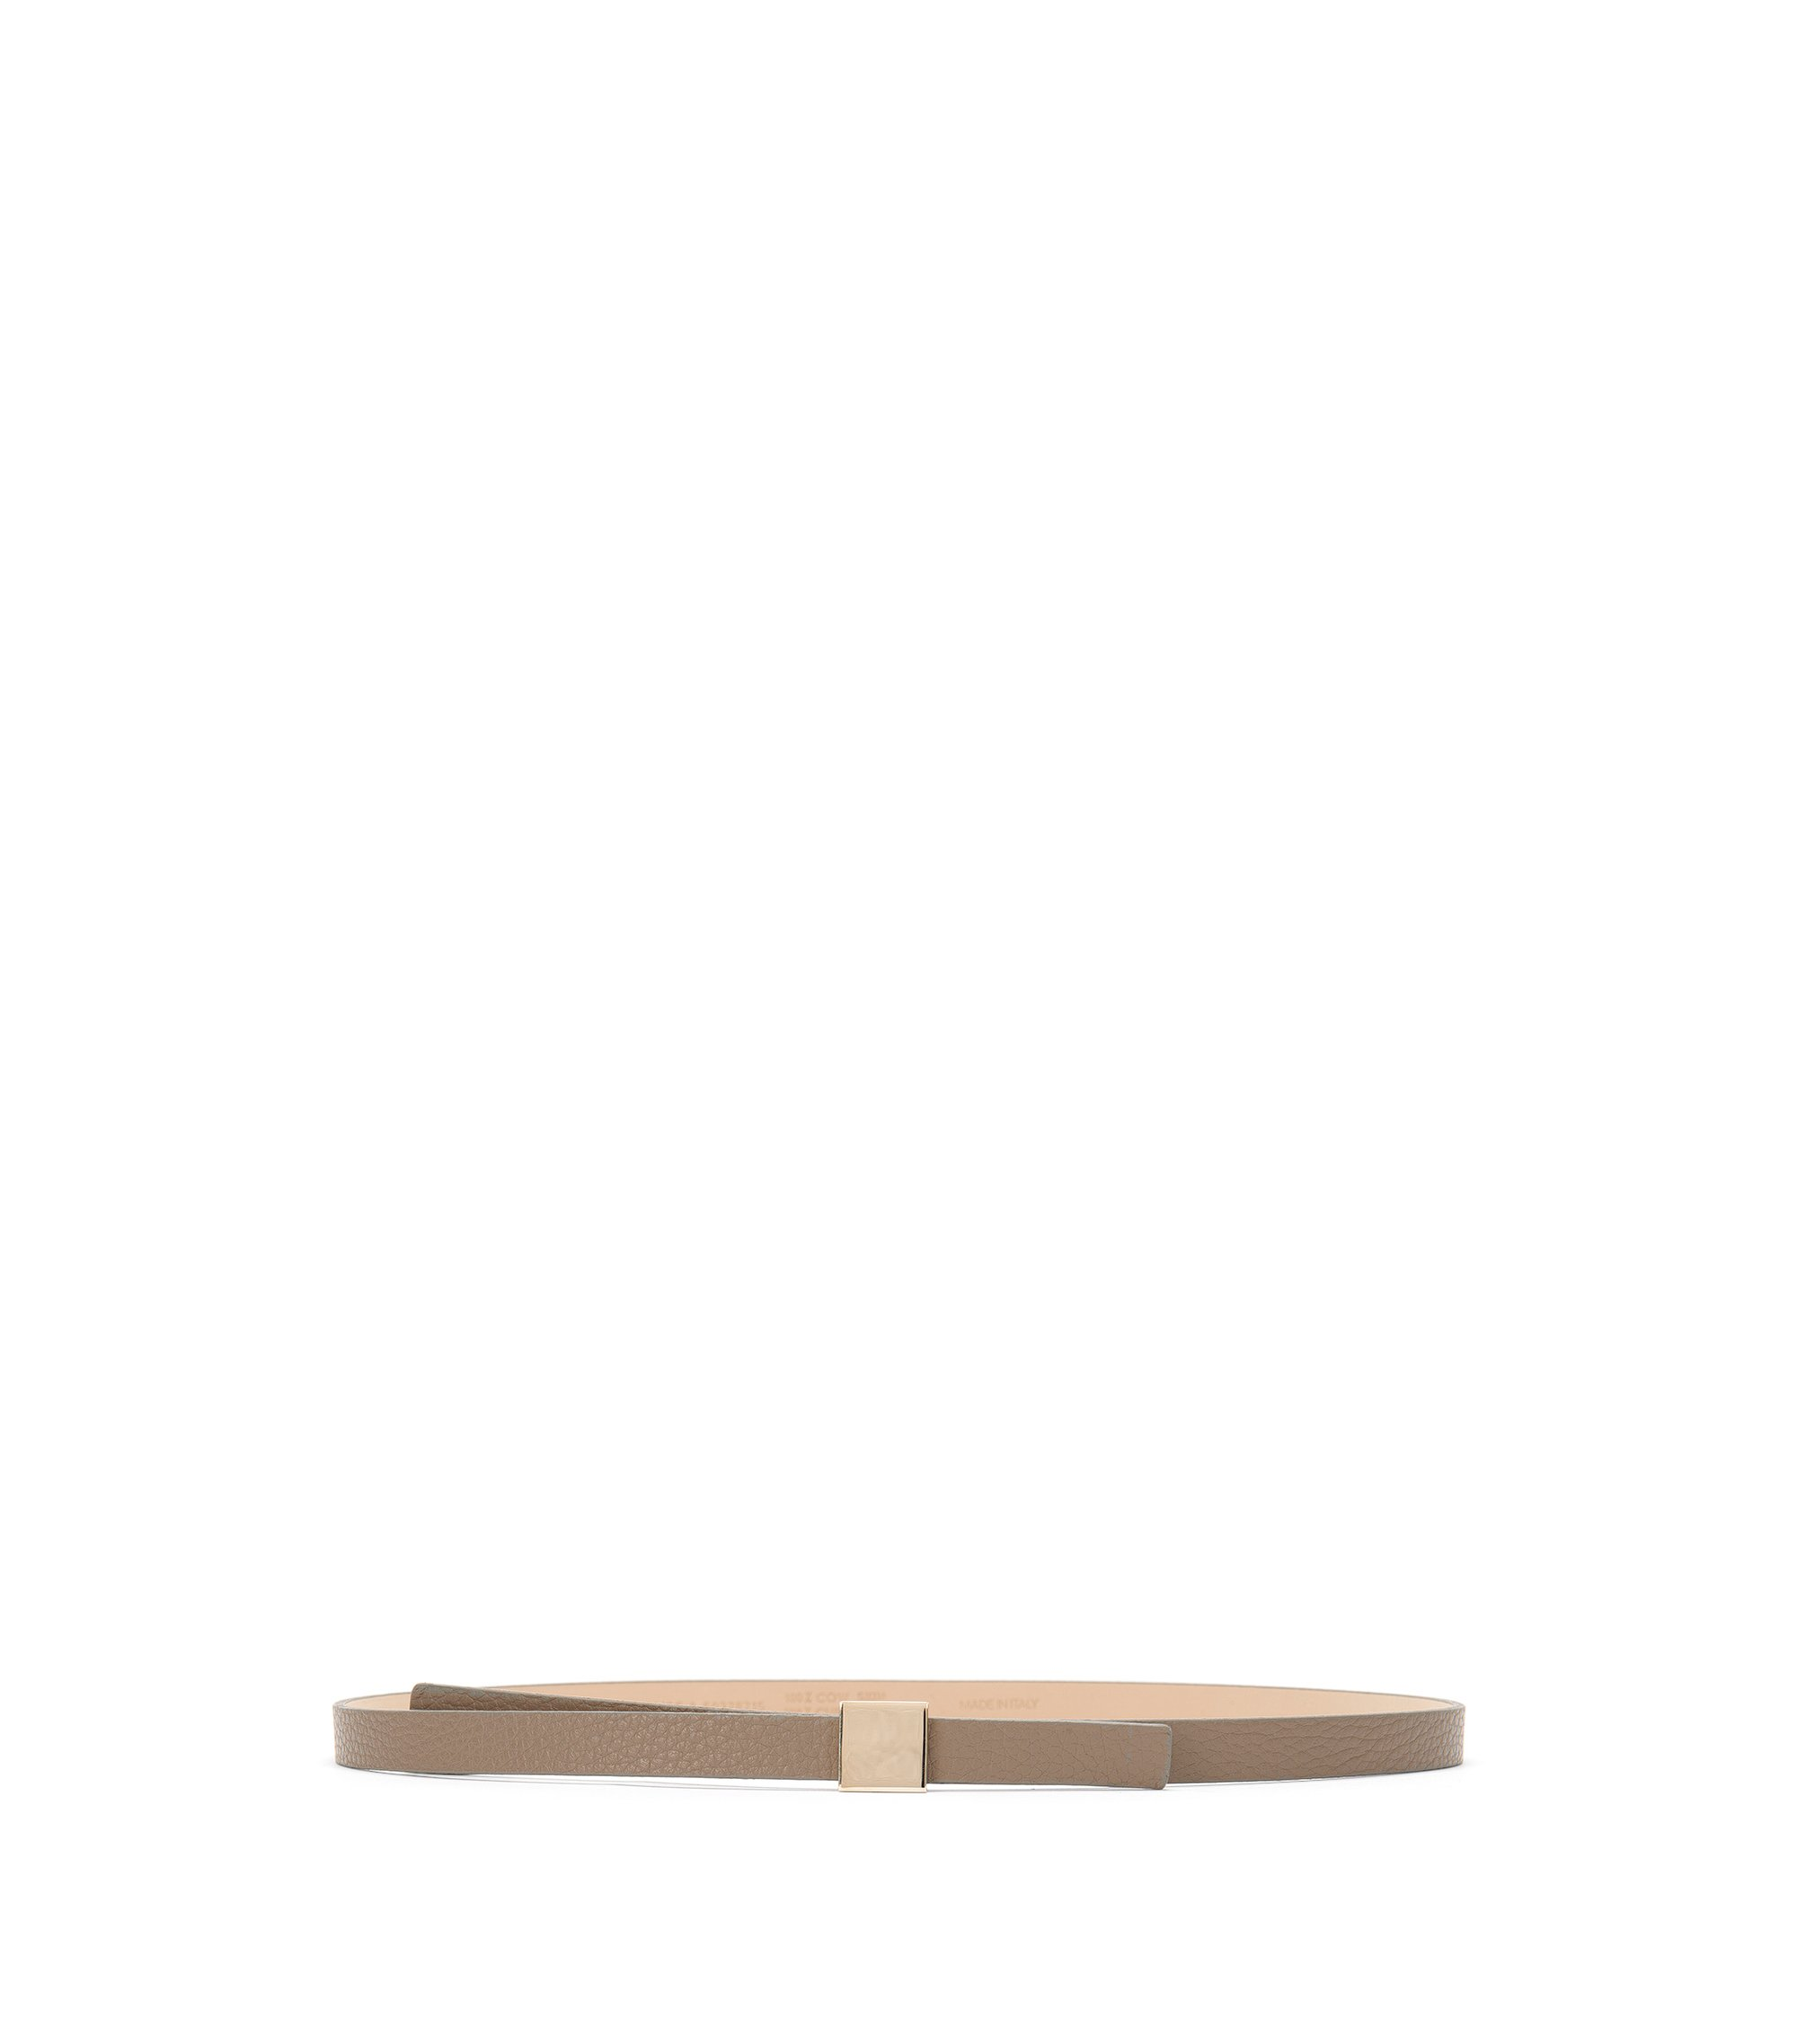 'Bliss-A' | Grained Leather Belt, Khaki